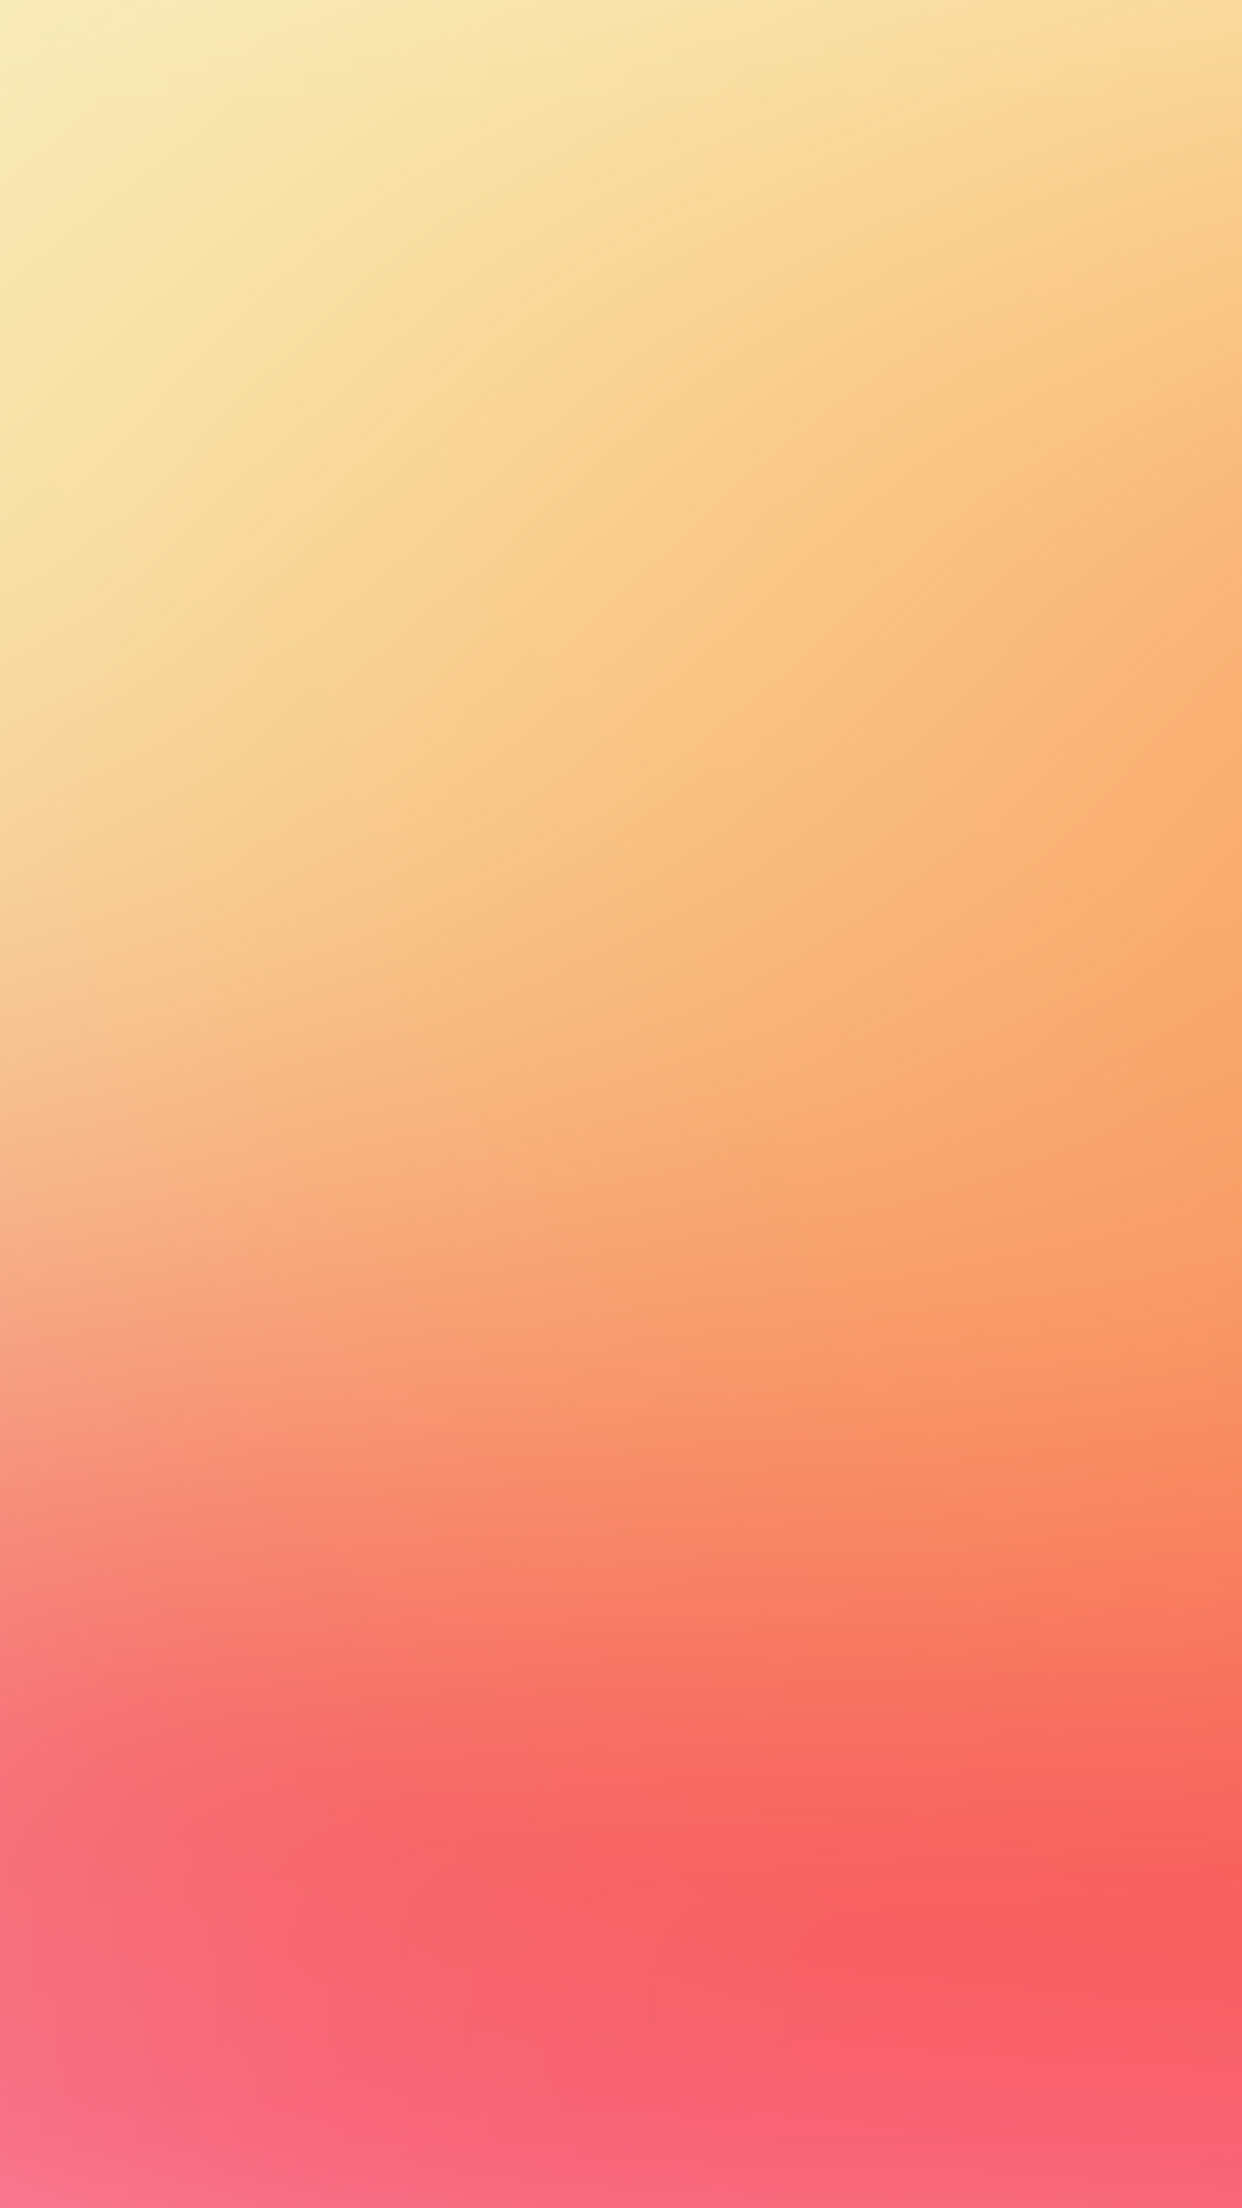 papers.co sg83 ipad glow pink pastel yellow soft gradation blur 34 iphone6 plus wallpaper